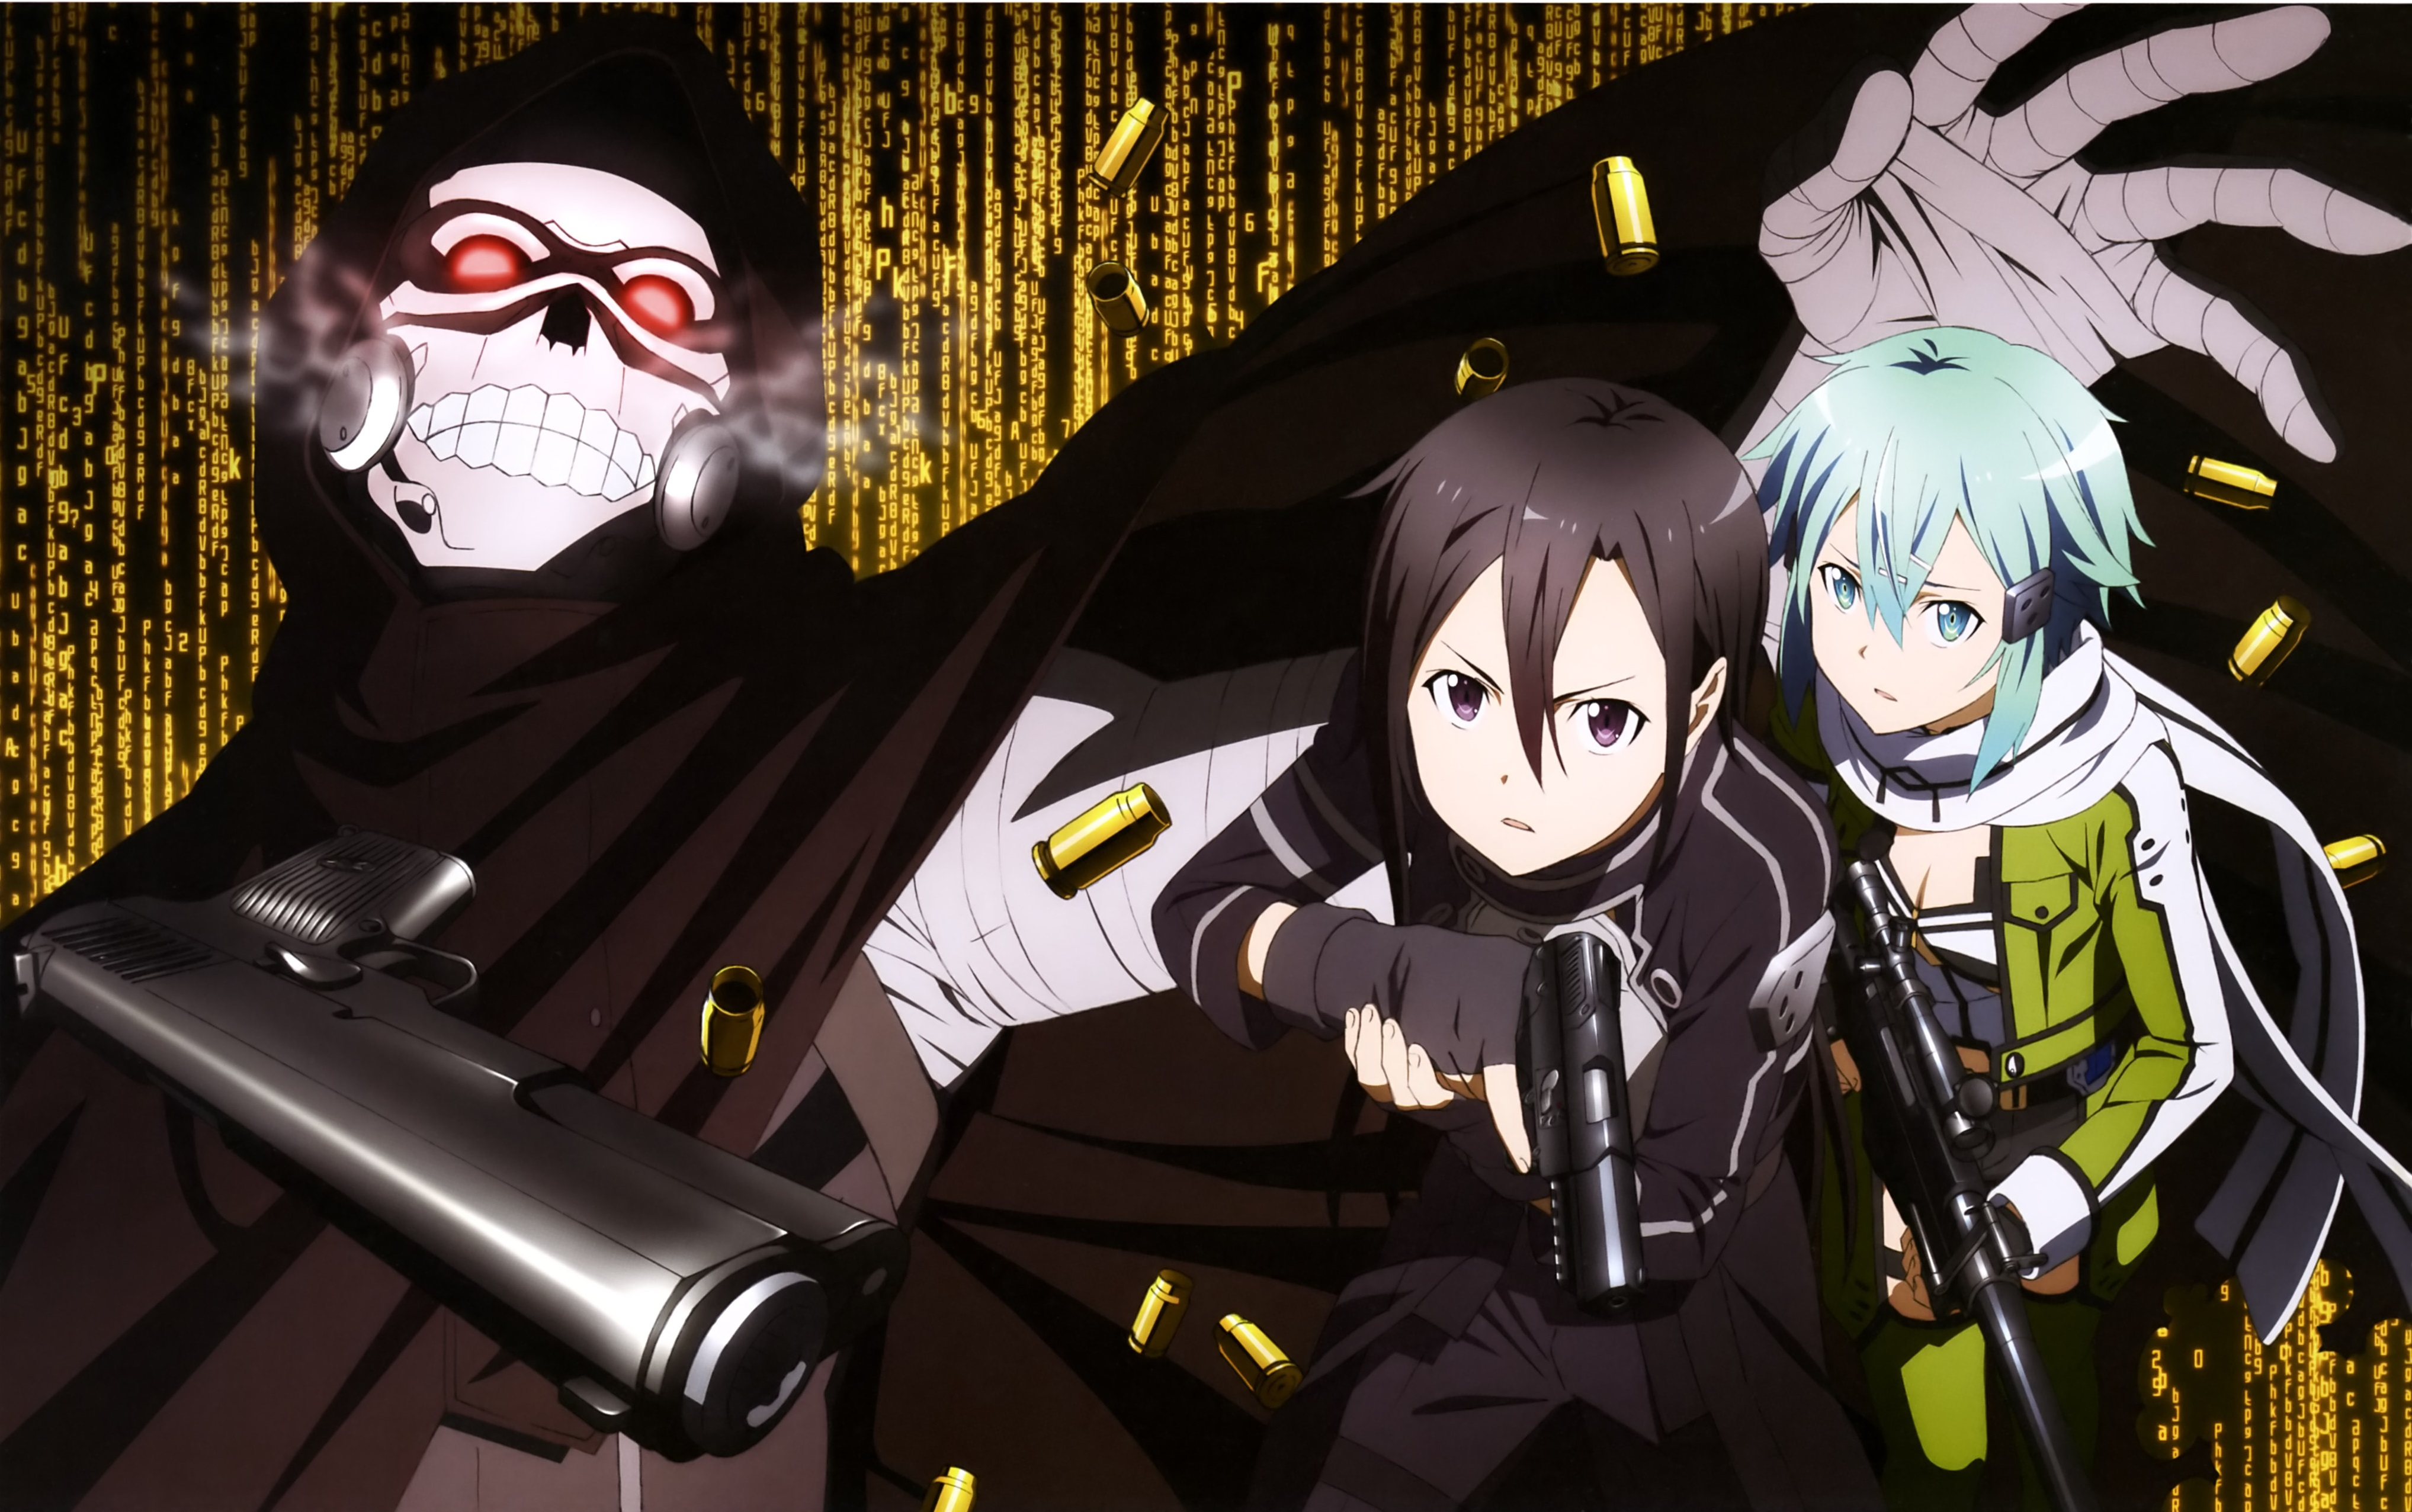 Kirito and Sinon Vs Death Gun 4k Ultra HD Wallpaper and Background